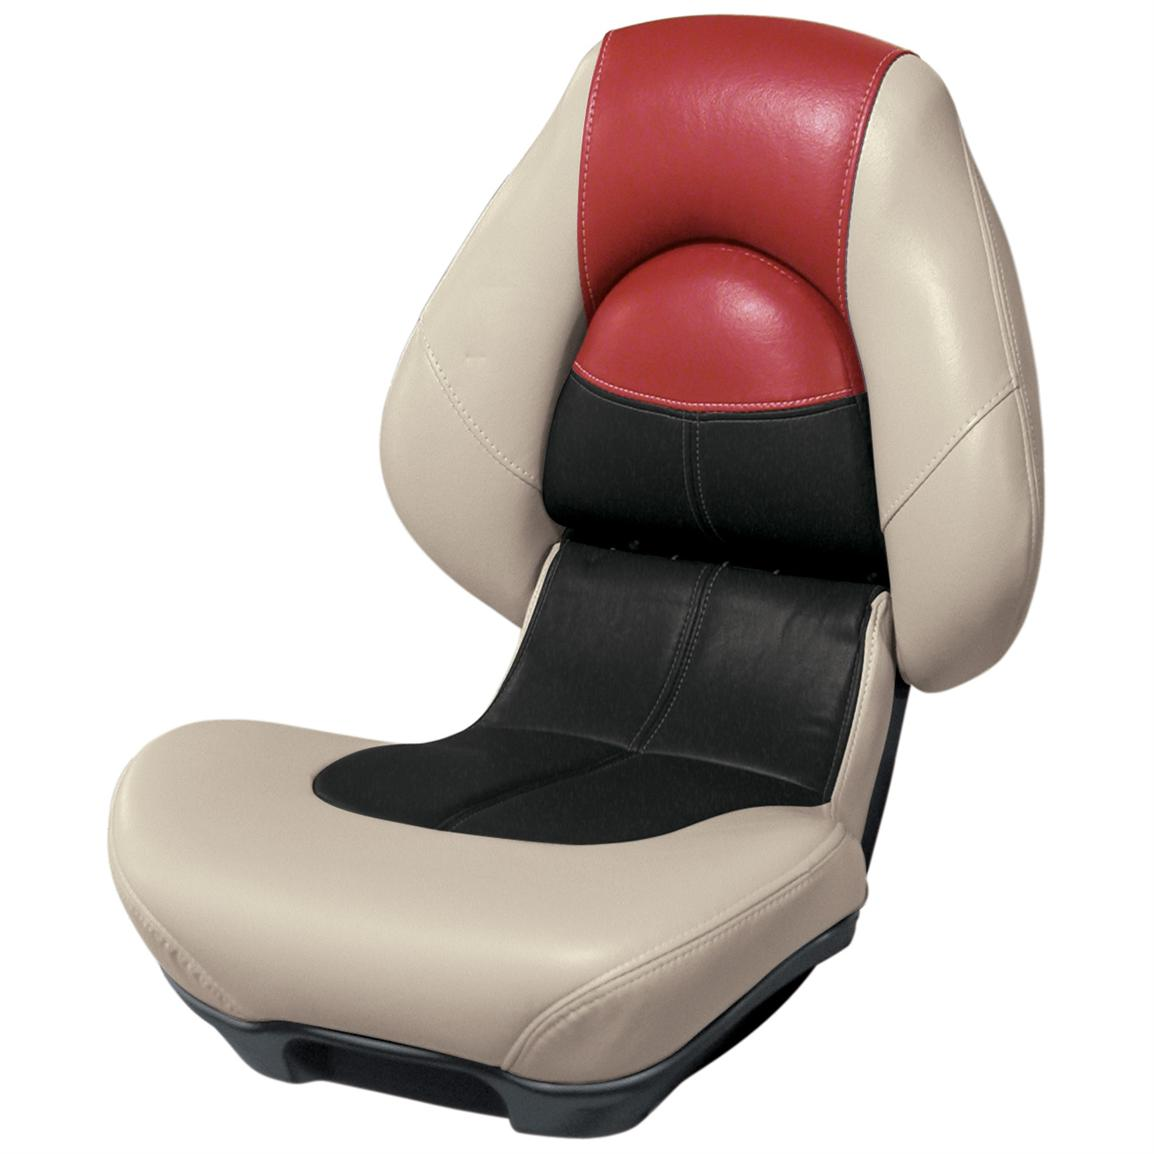 Wise® Blast-Off™ Series Centric 2 Folding Boat Seat, Mushroom / Black / Red